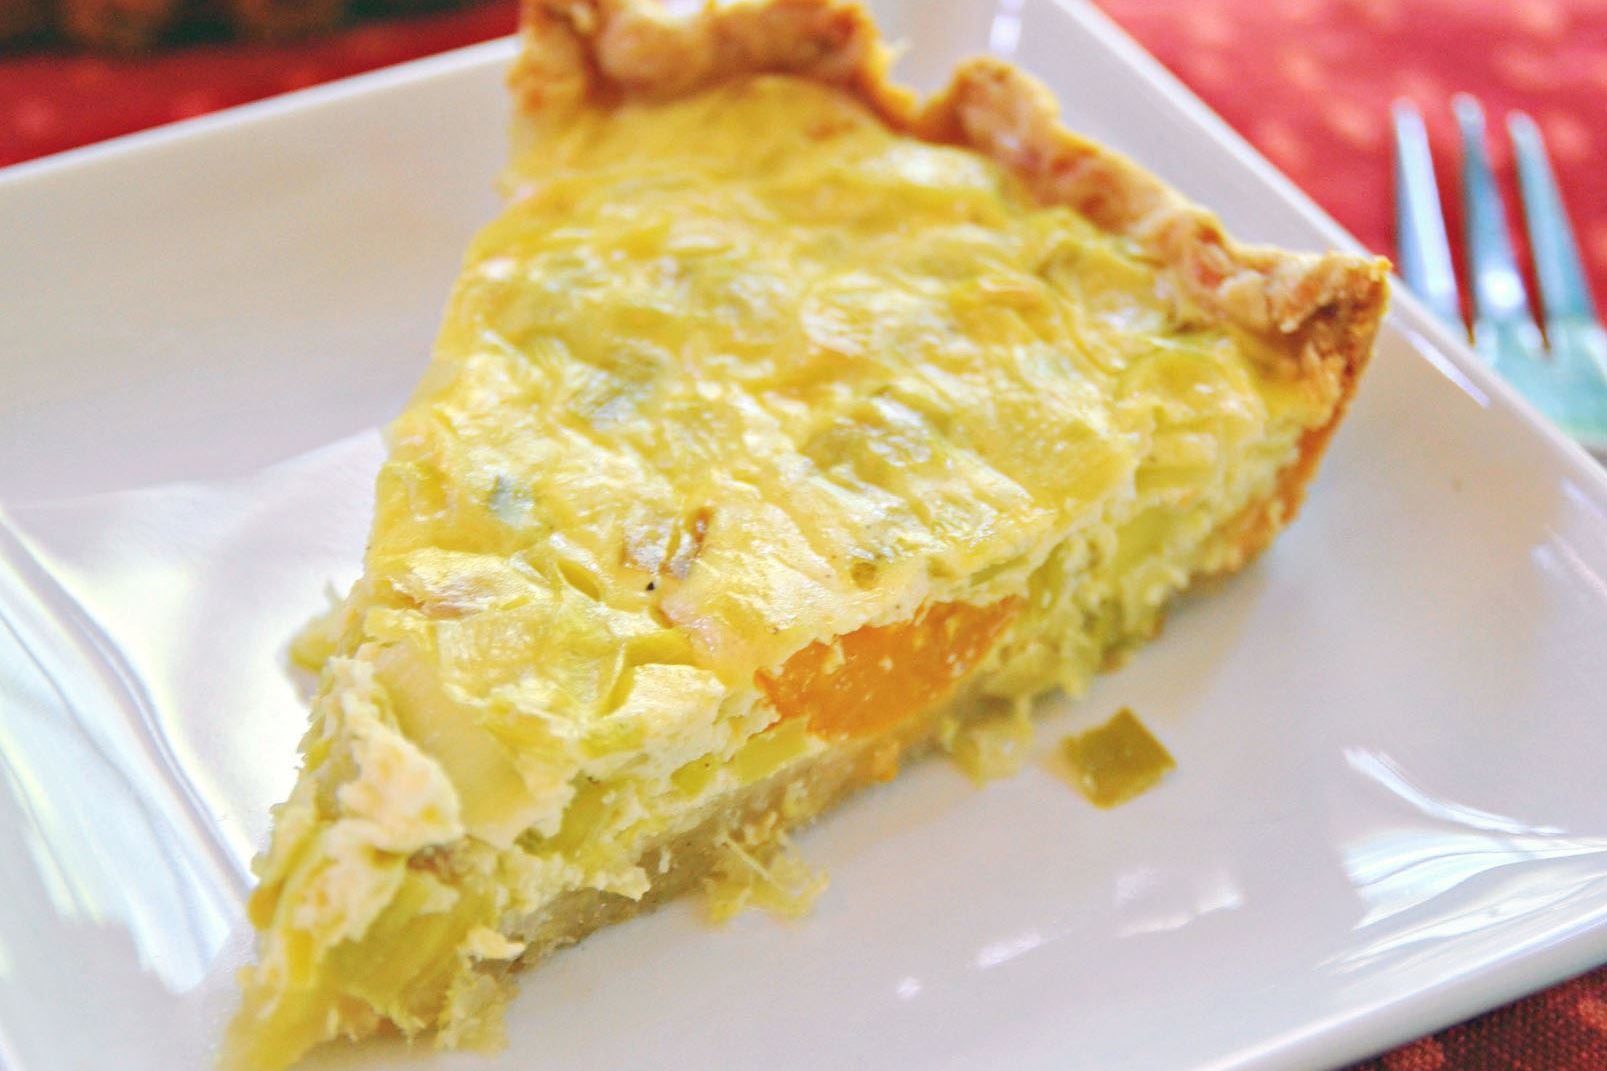 leek-flamiche Leek Flamiche with Cheese Pastry.